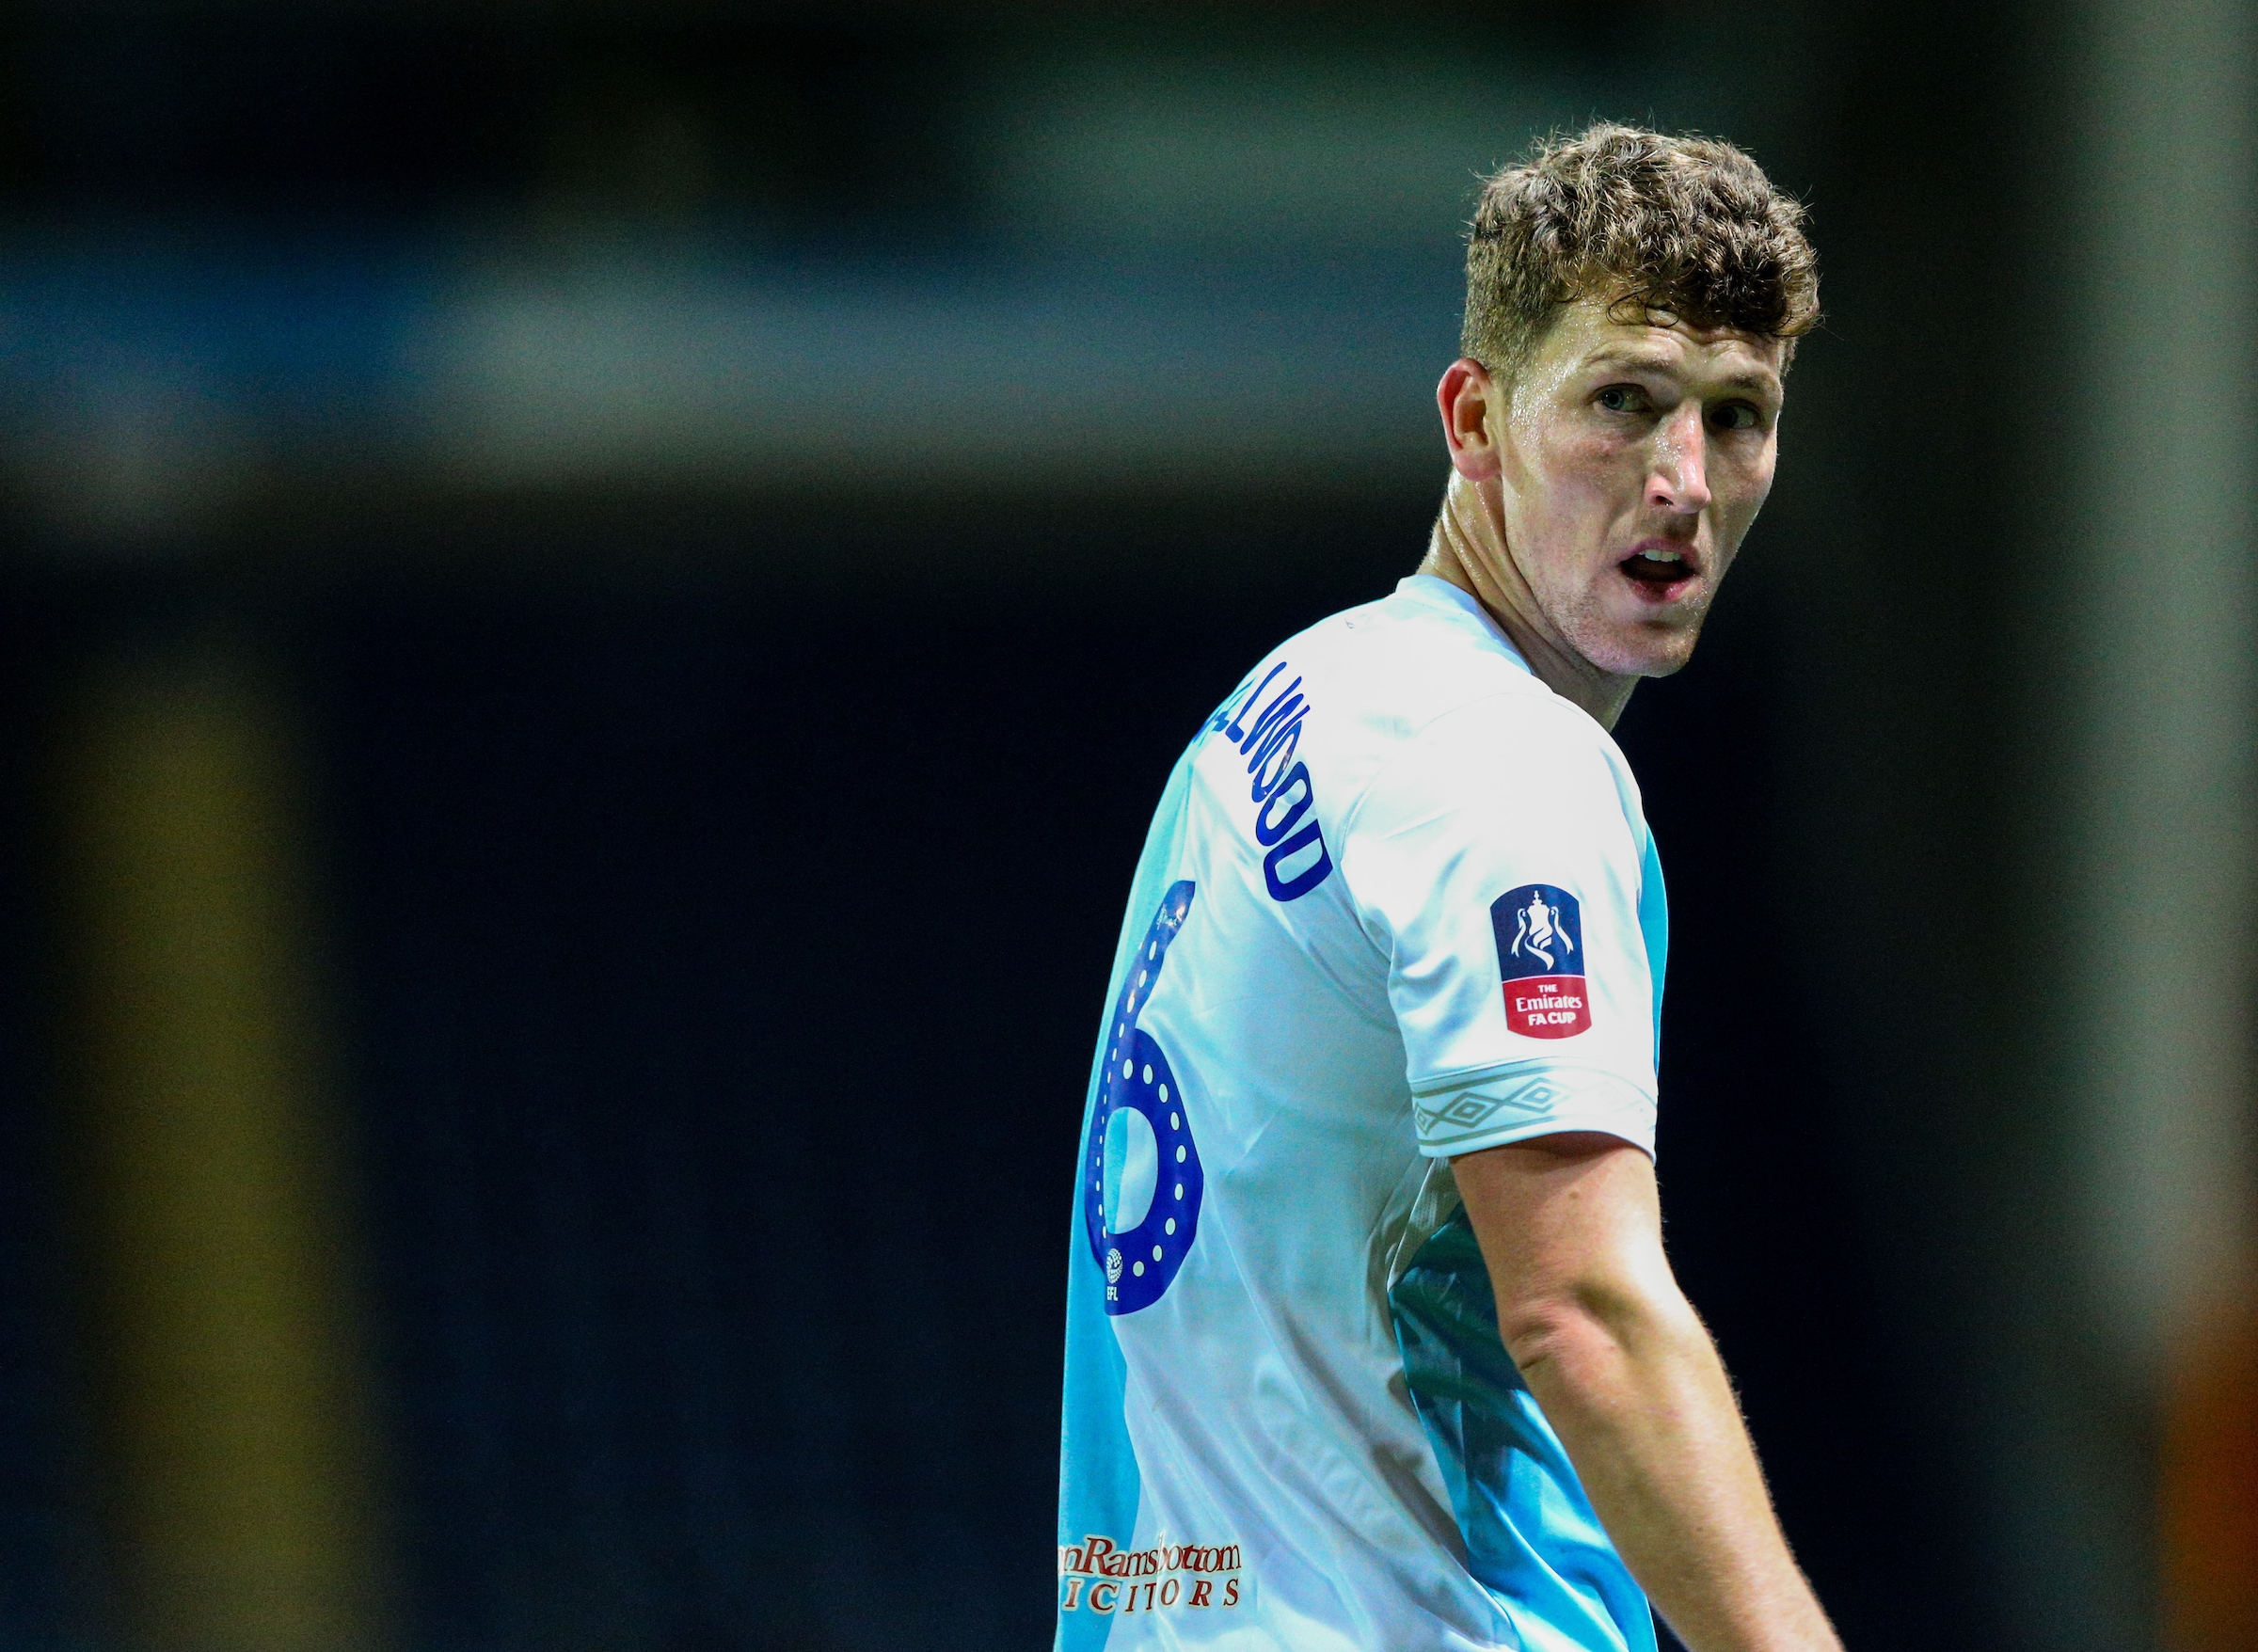 Rovers midfielder Richie Smallwood has returned from a three game suspension